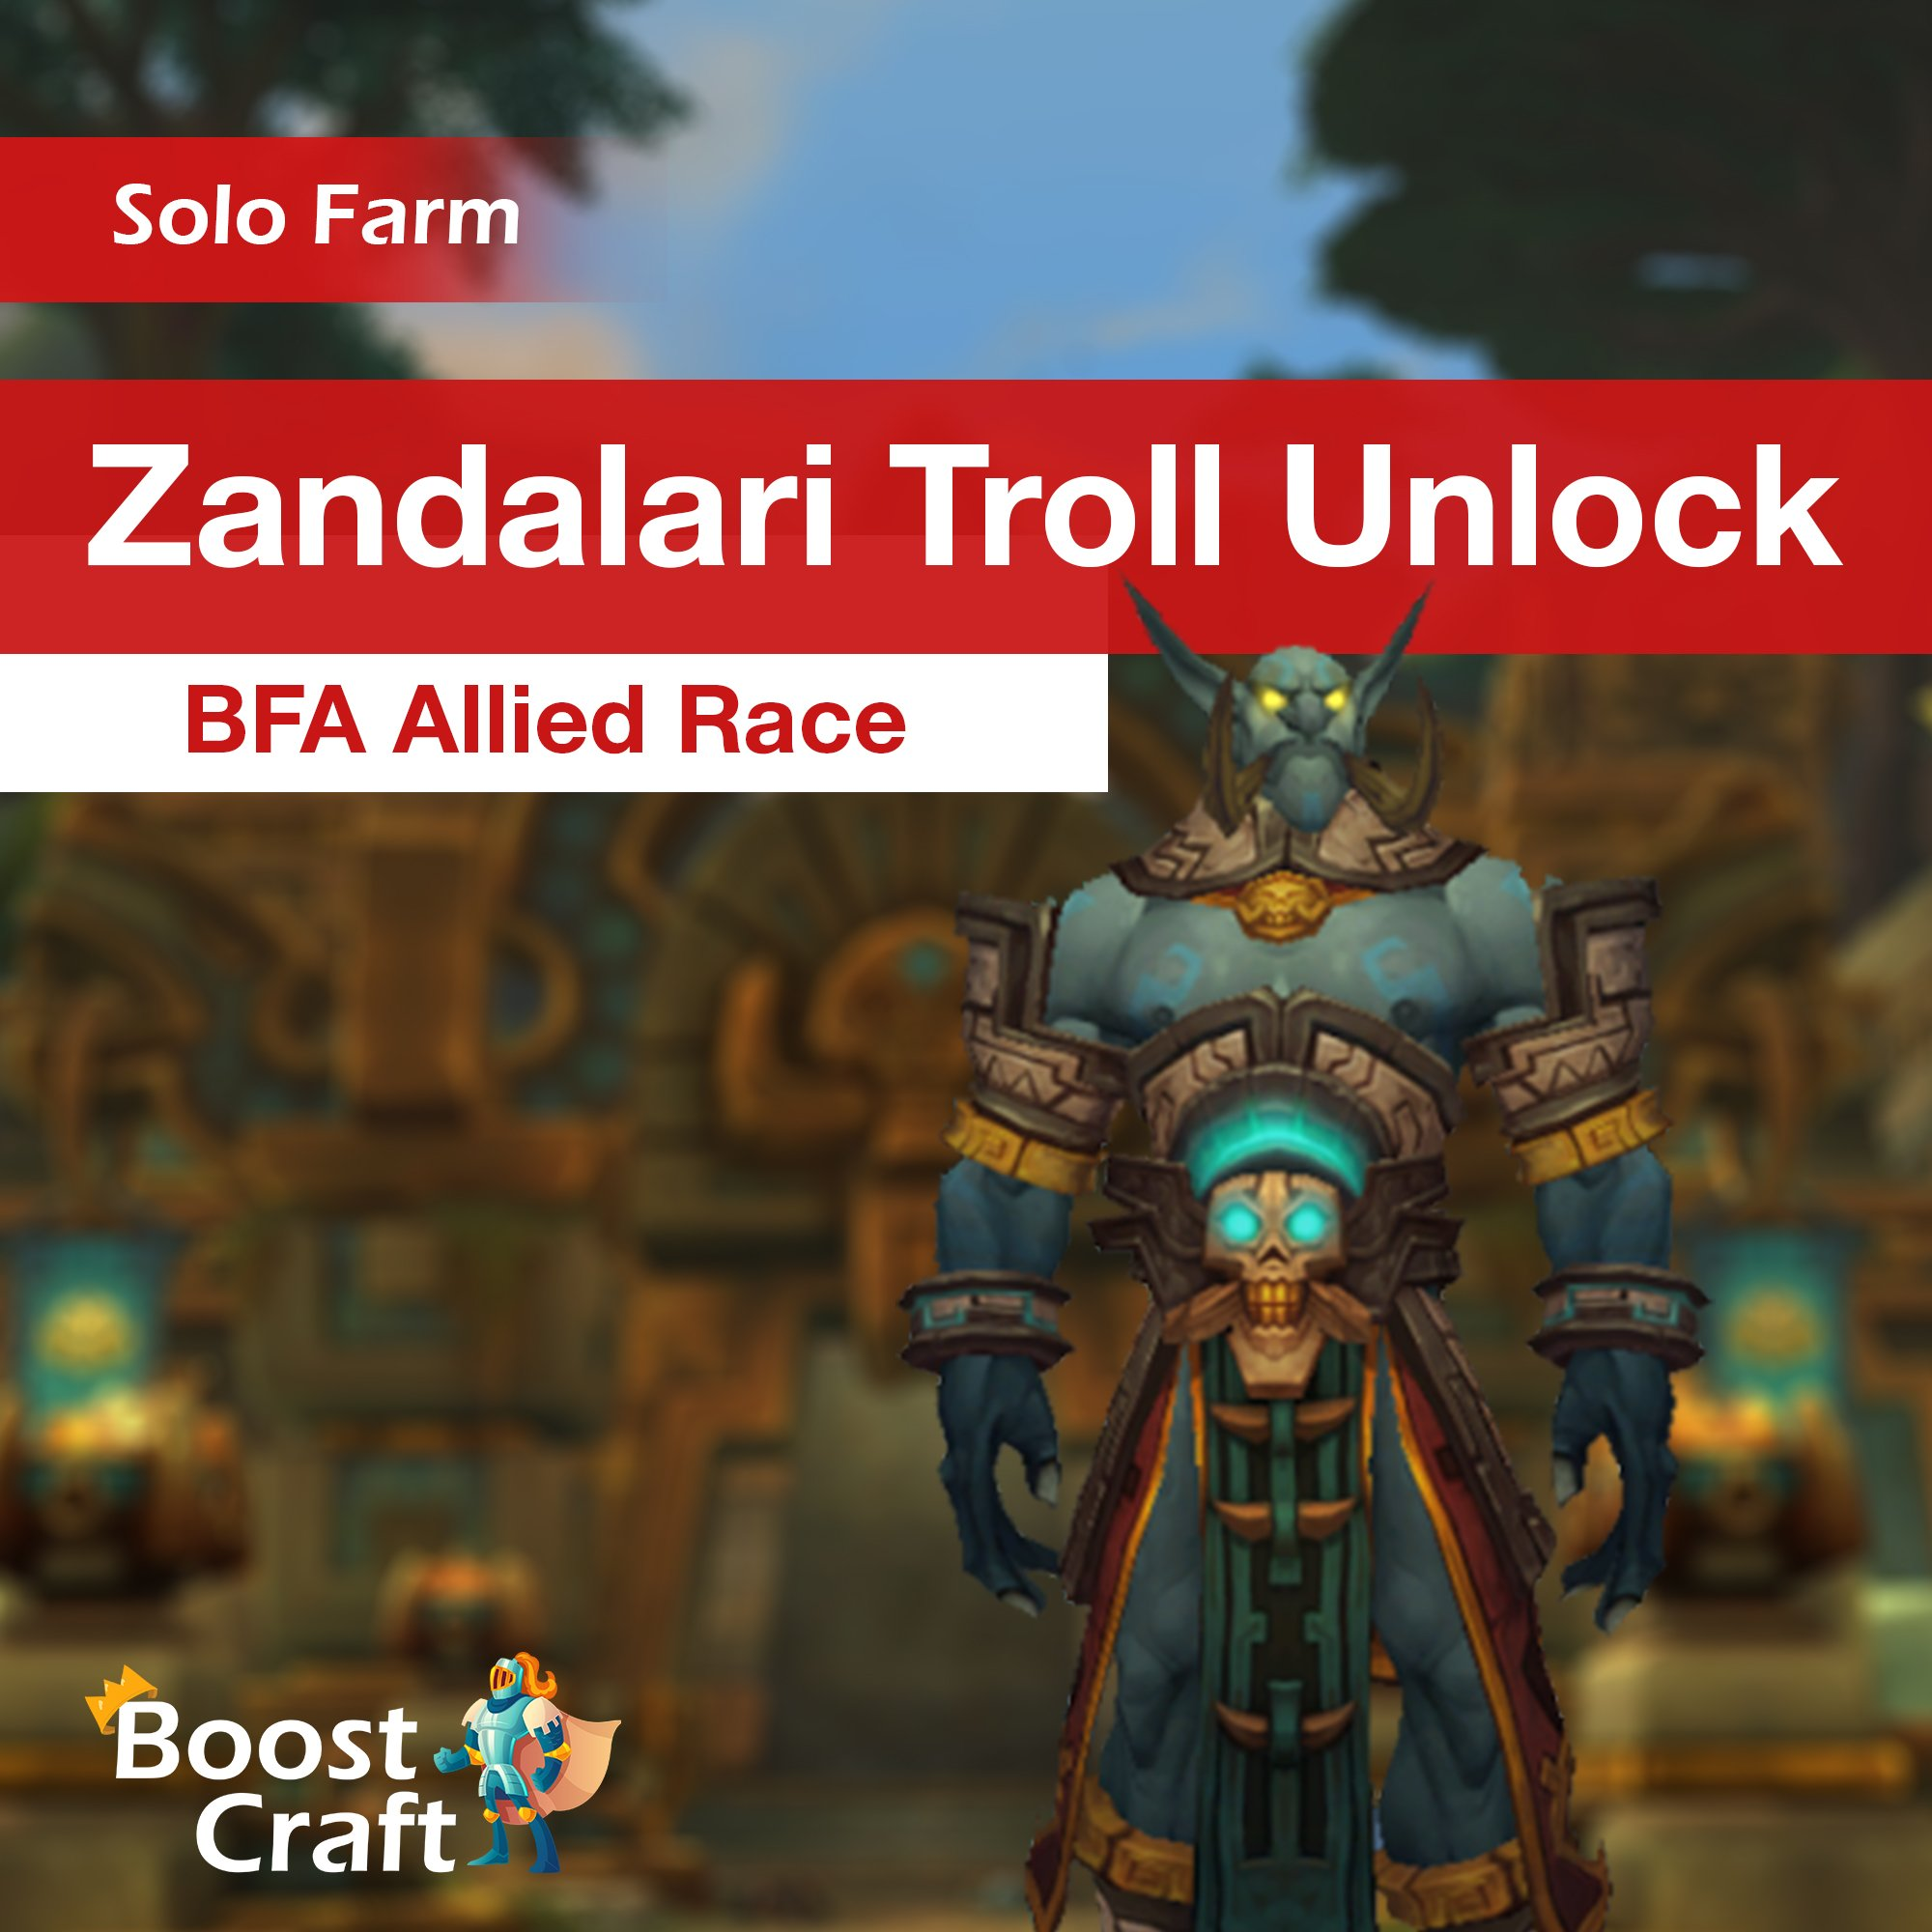 Zandalari Troll Unlock – BFA Allied Race